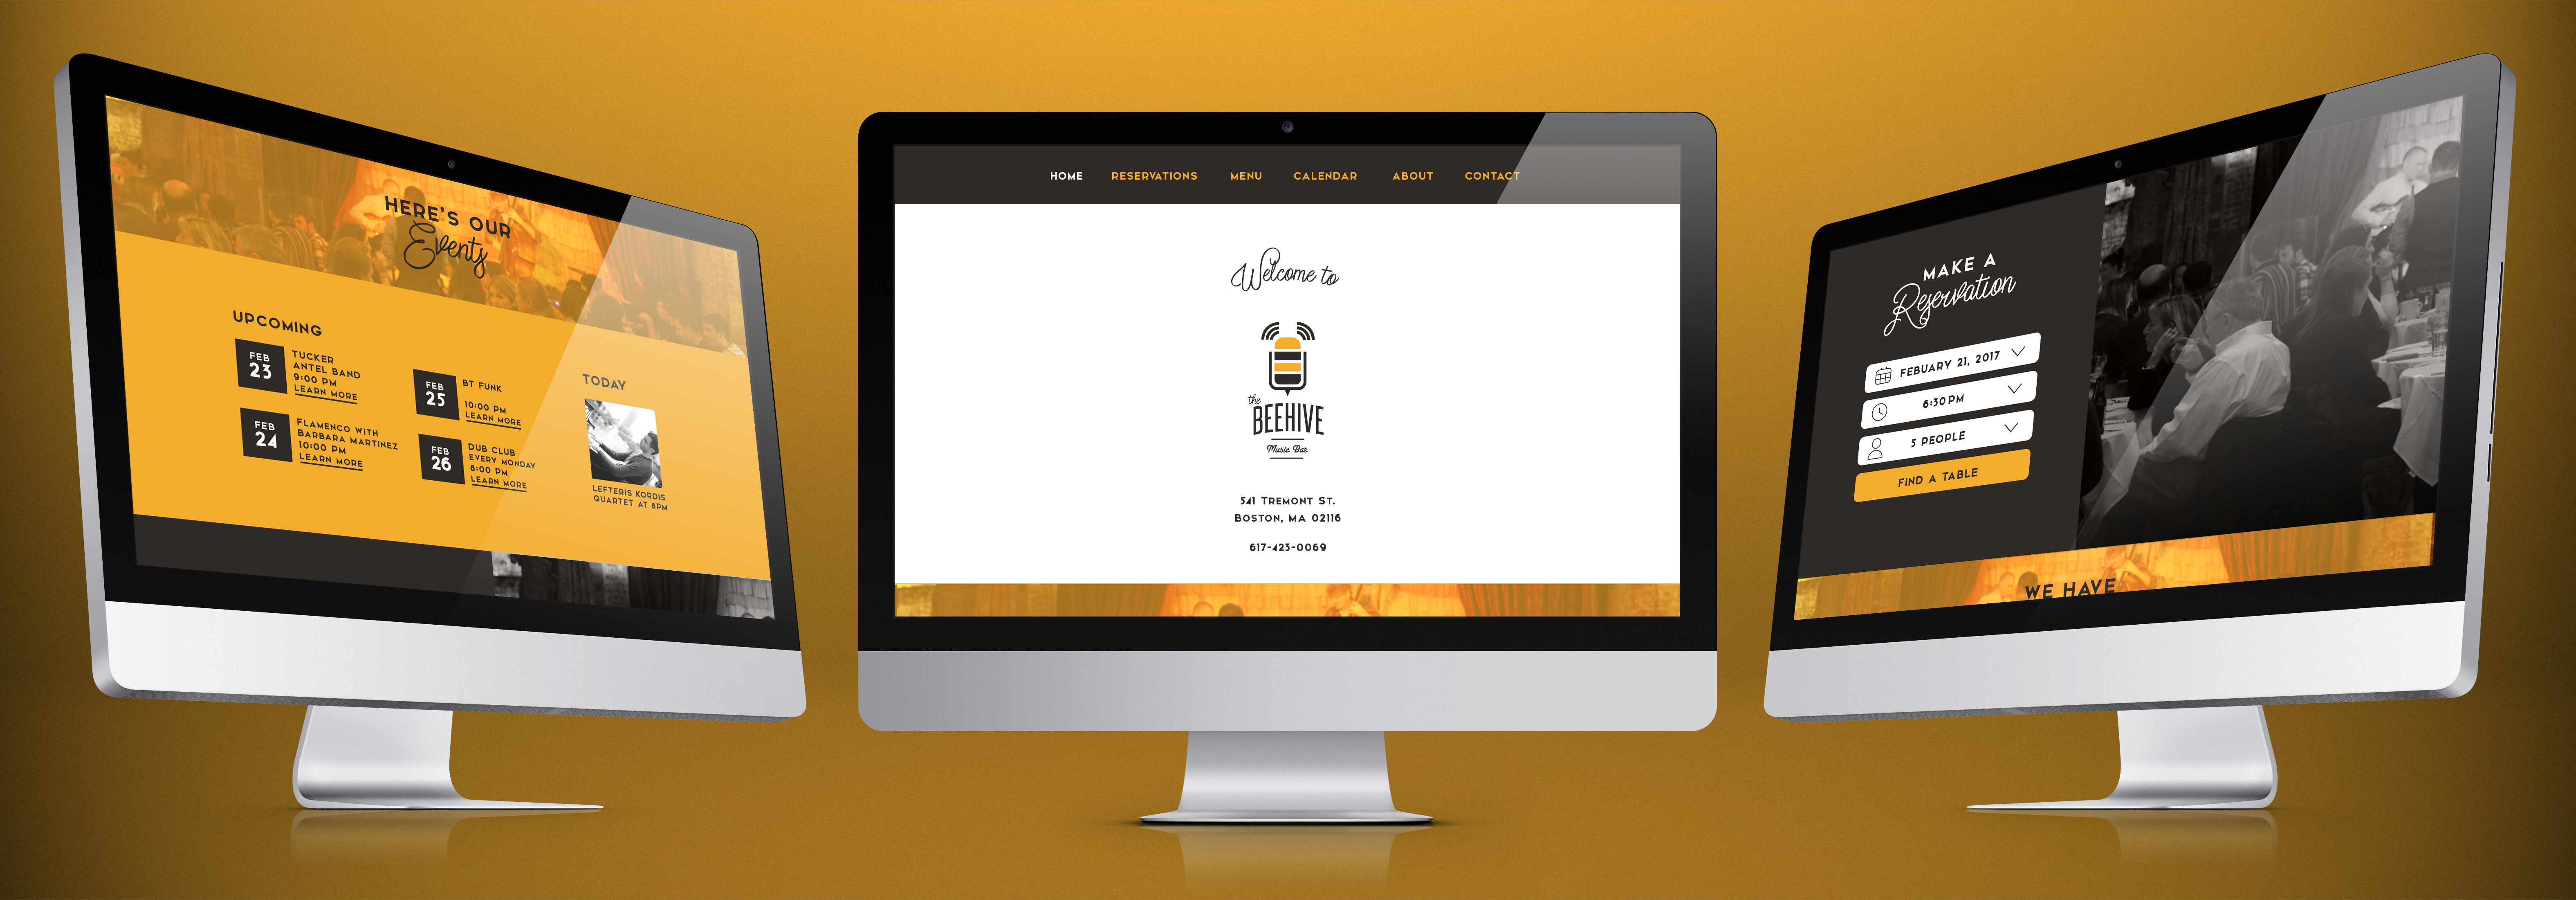 The website's main functions and purposes are to inform the customer about  The Beehive Music Bar, it's events and showtimes, and menu items and to  easily ...